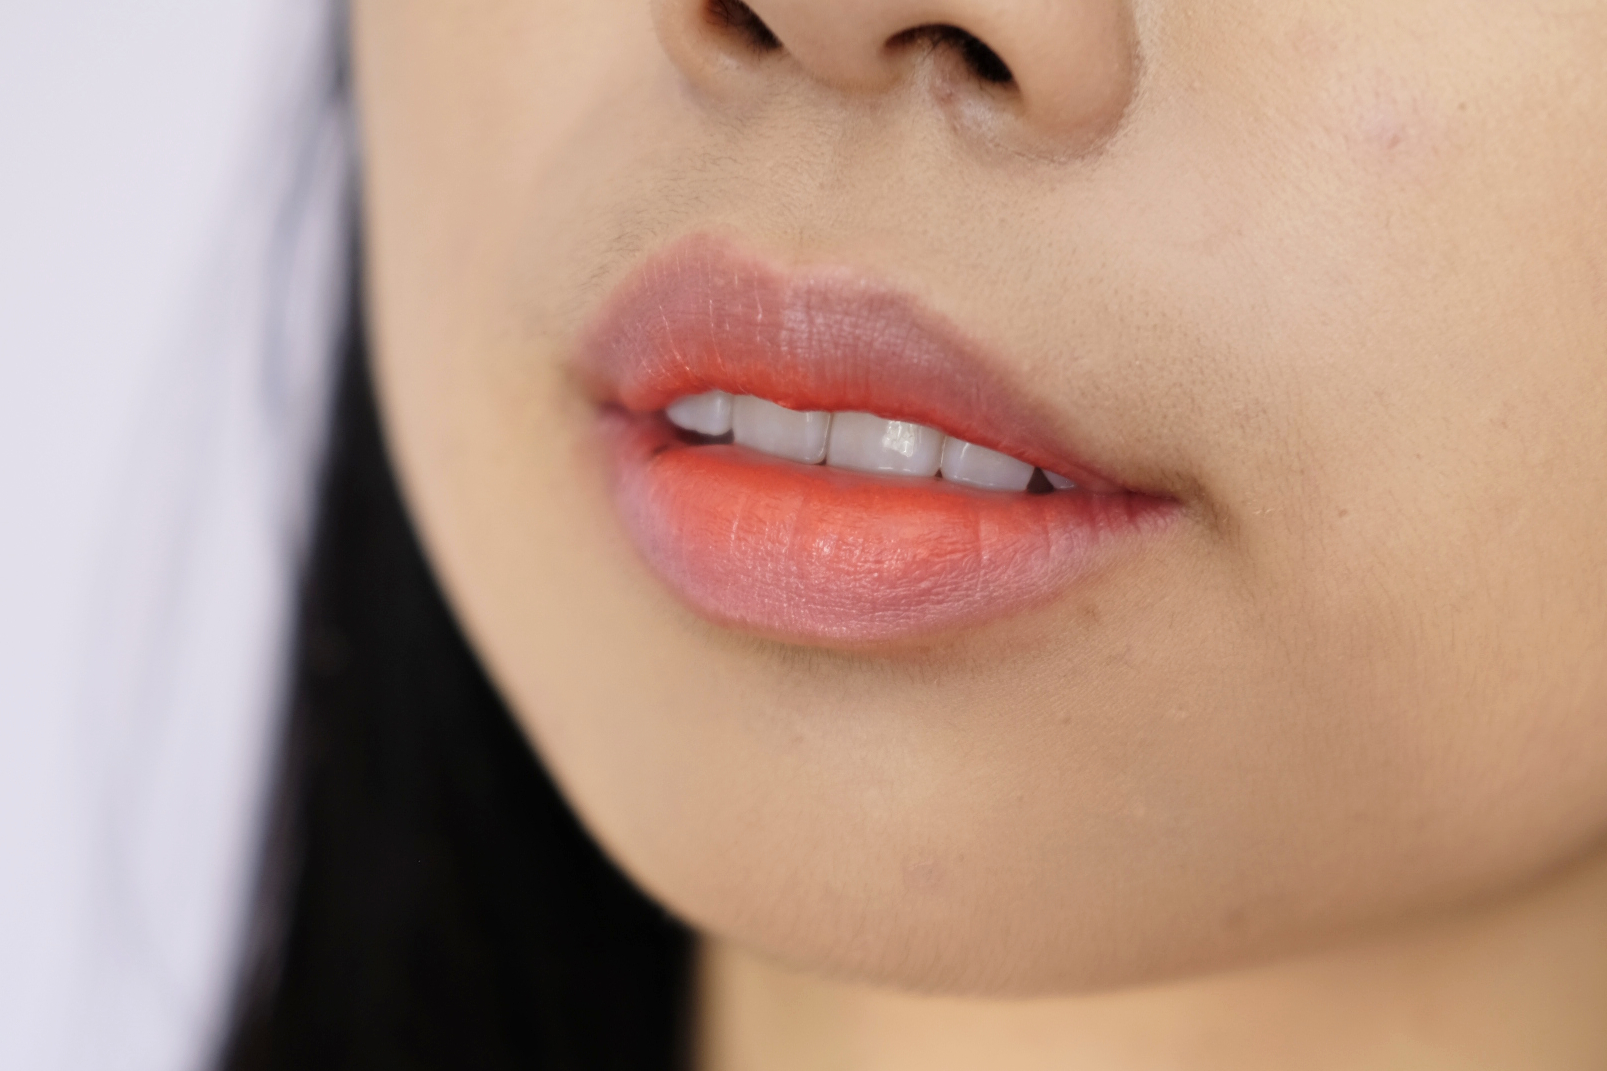 Laneige Two Tone Lipsticks in Red Blossom, Pink Salmon